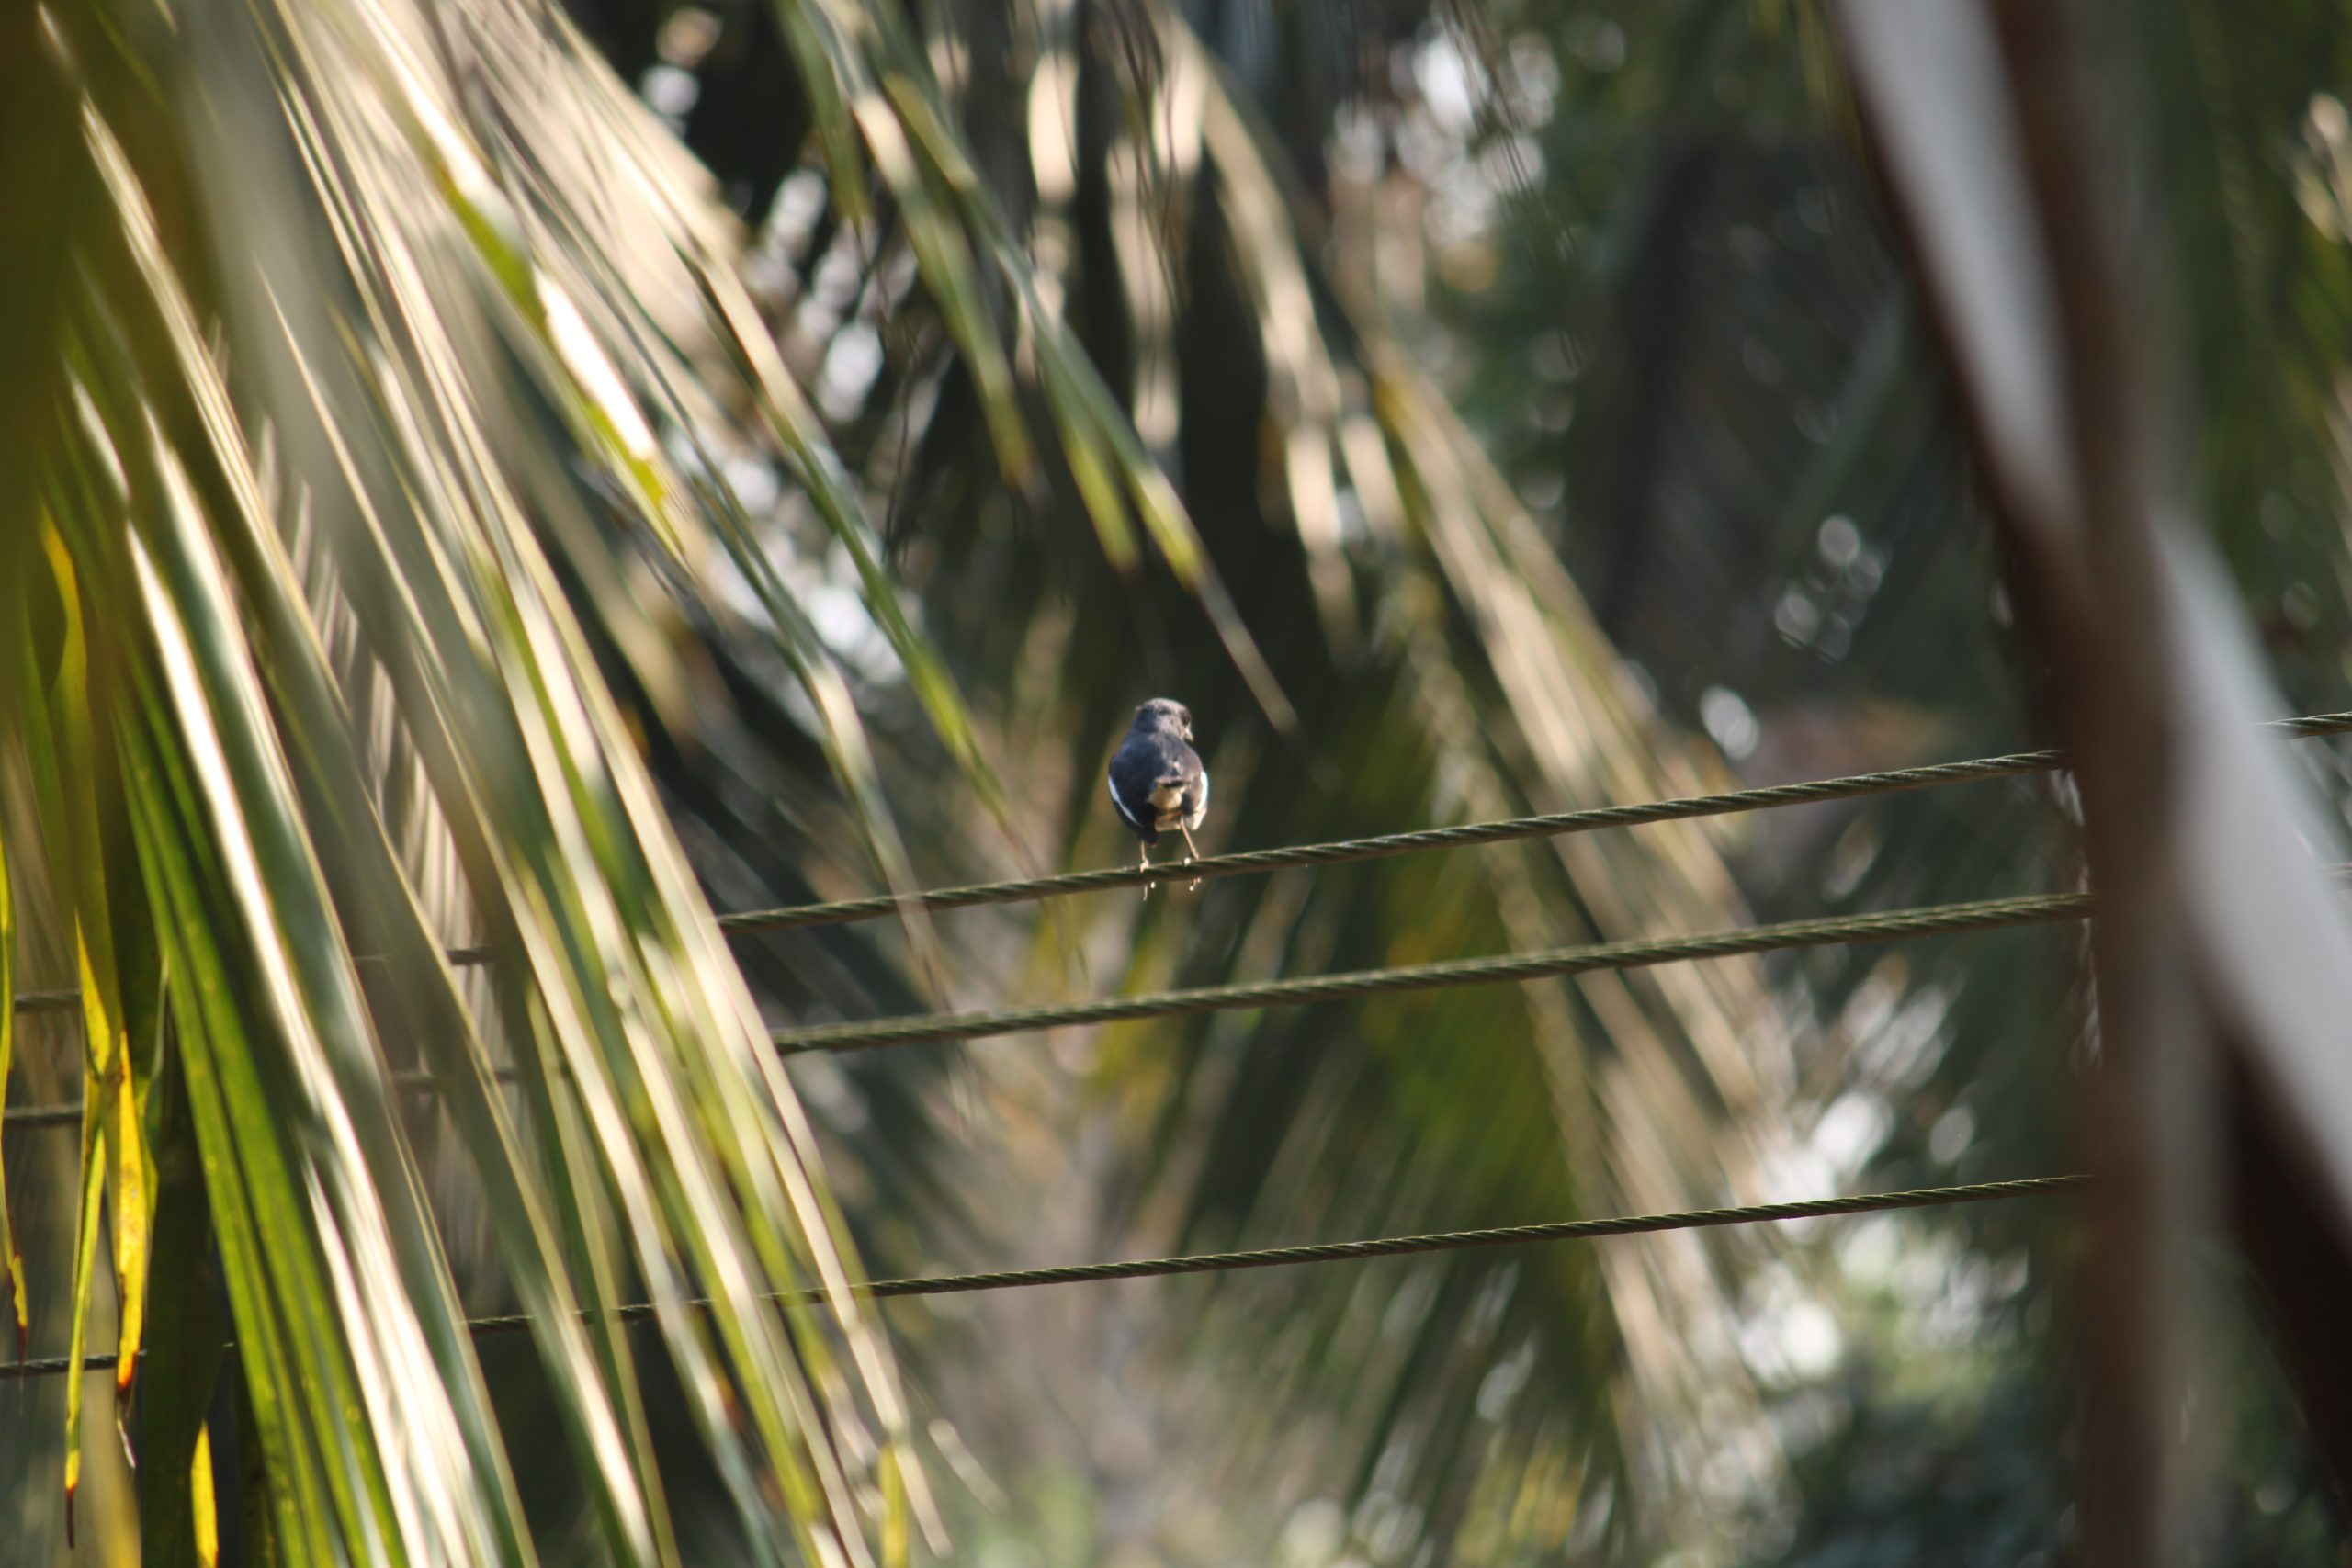 A bird sitting on an electric wire